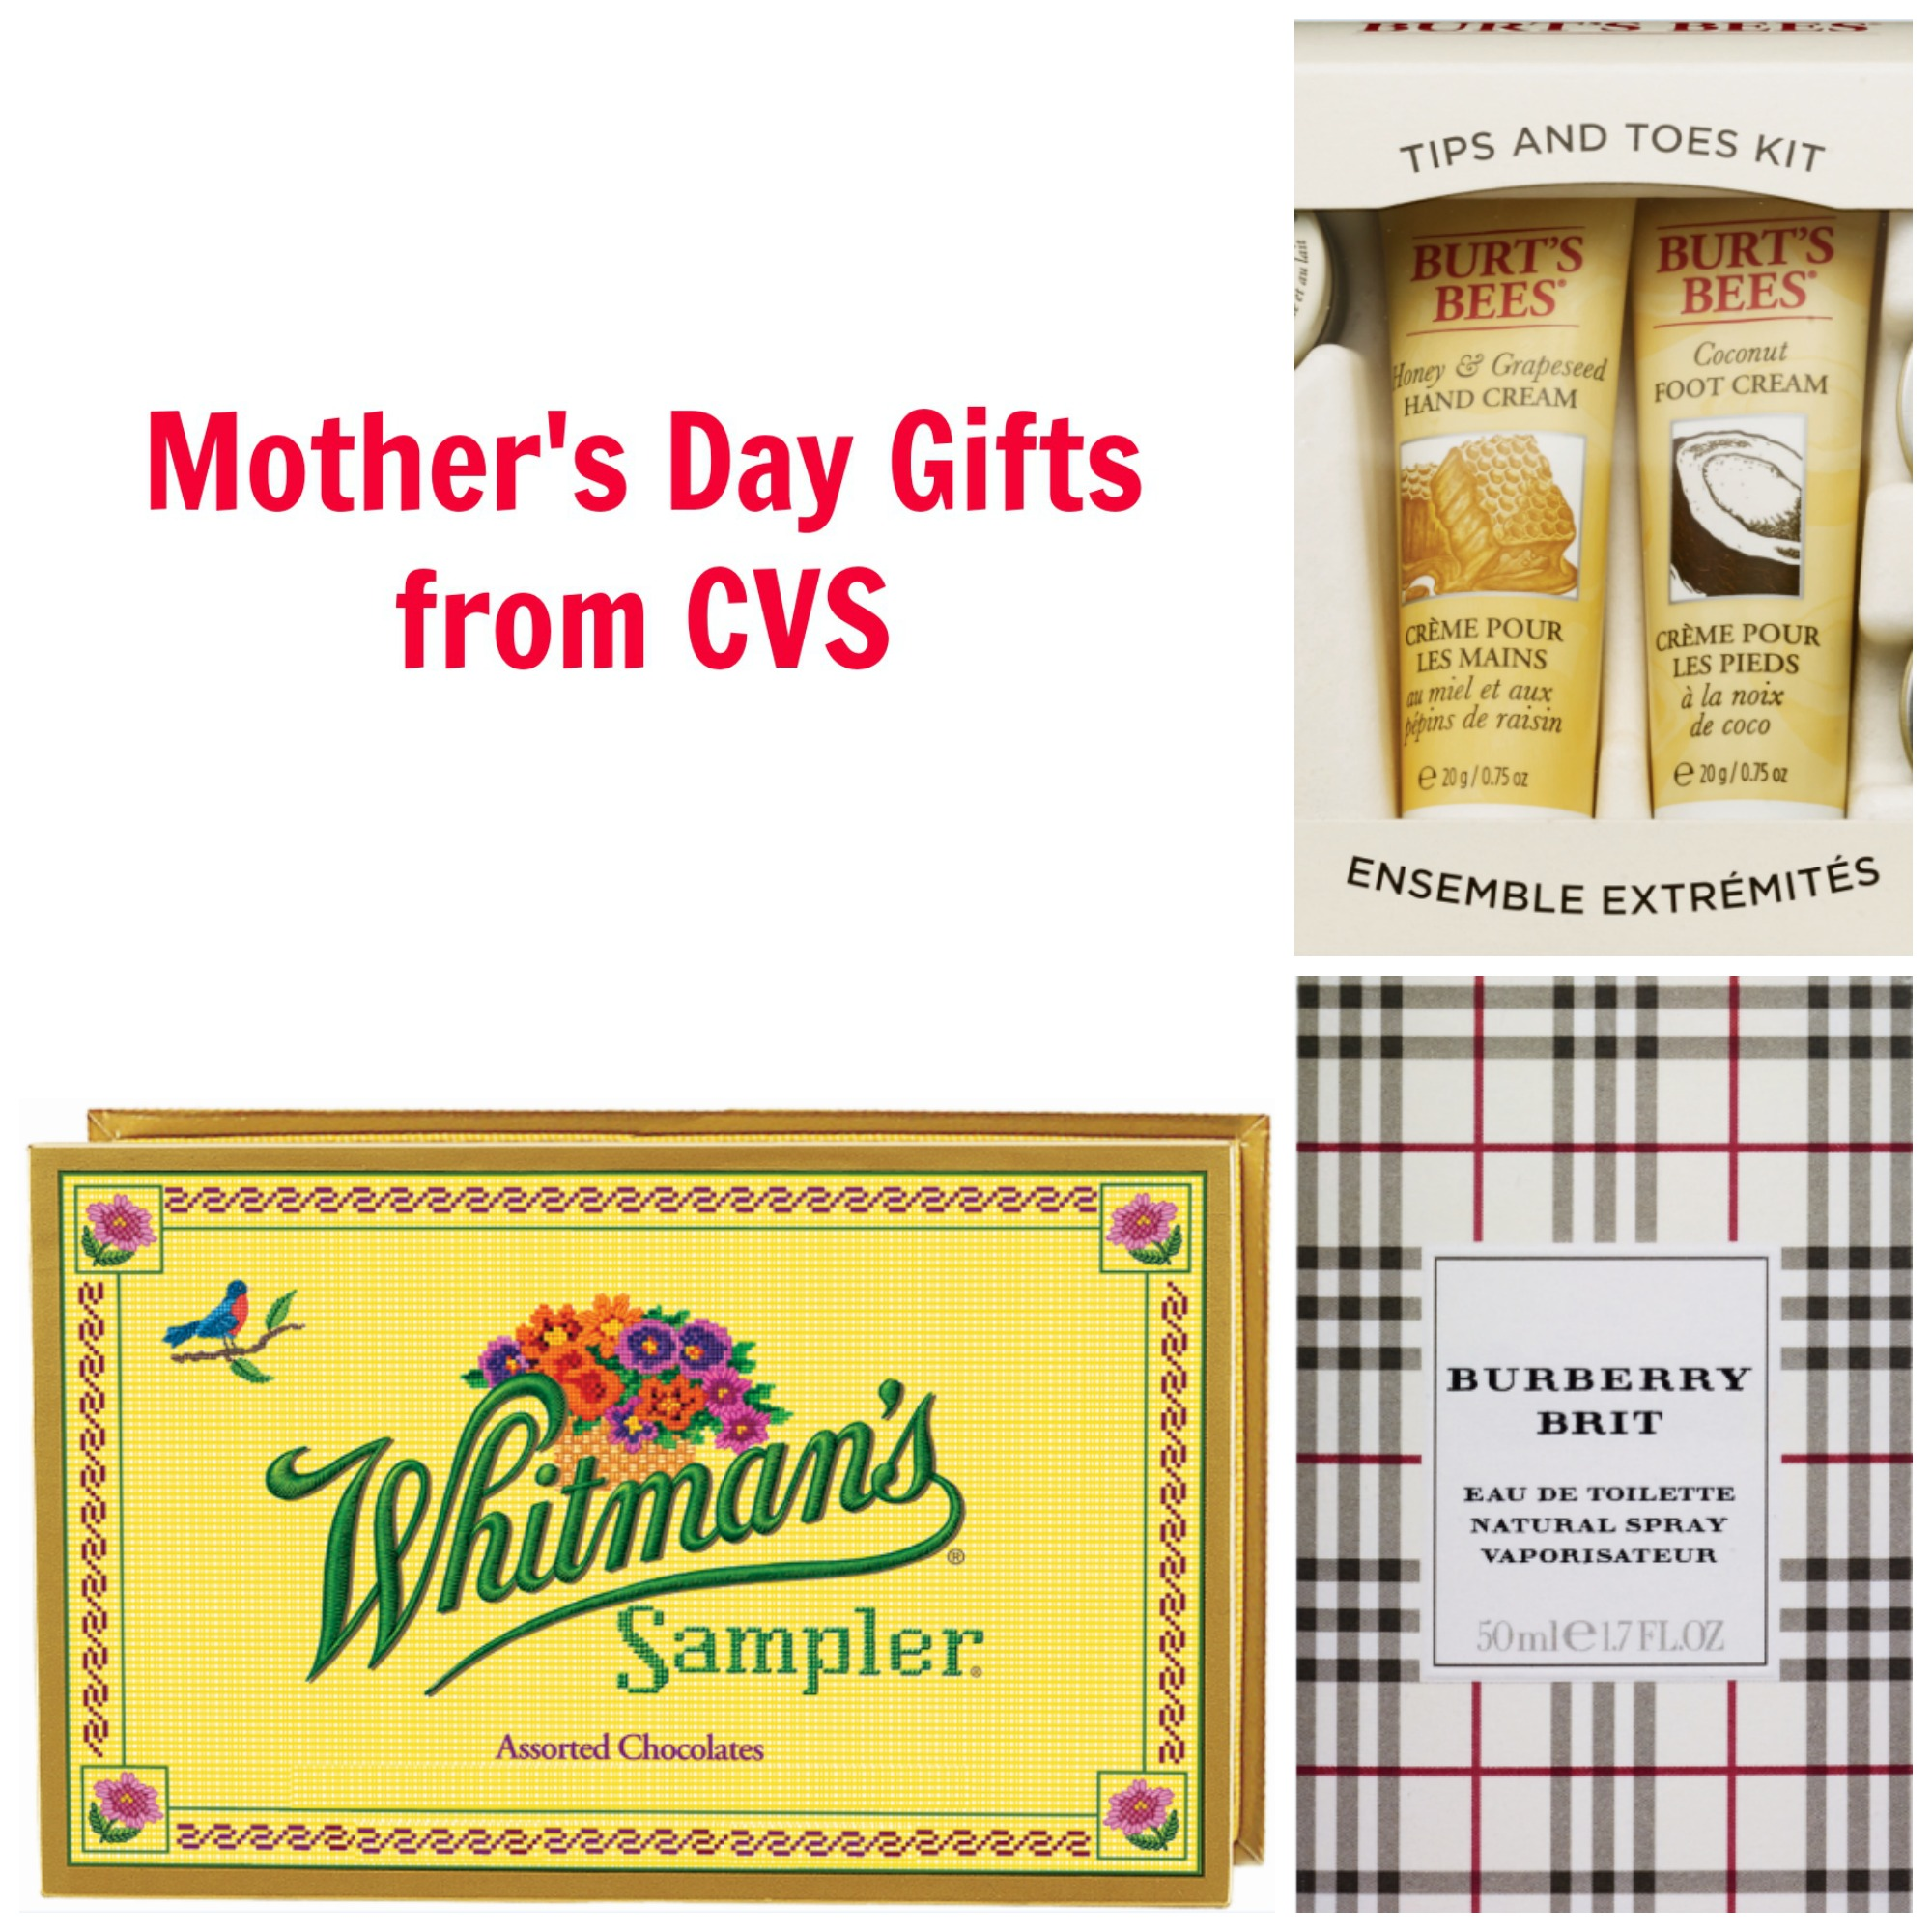 Mother's Day Gifts from CVS Collage #ad